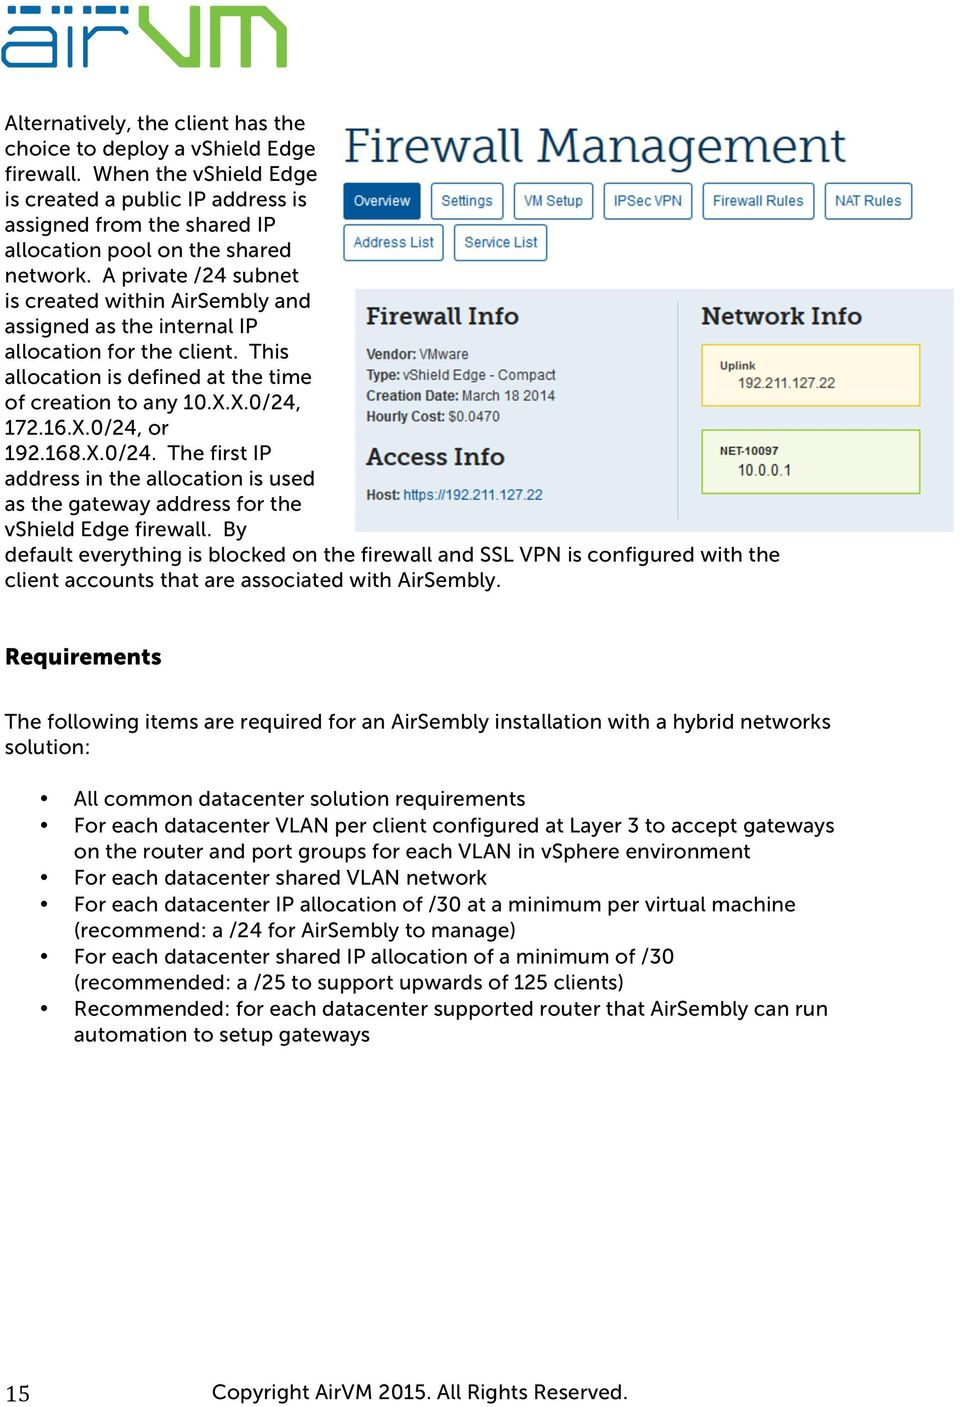 168.X.0/24. The first IP address in the allocation is used as the gateway address for the vshield Edge firewall.